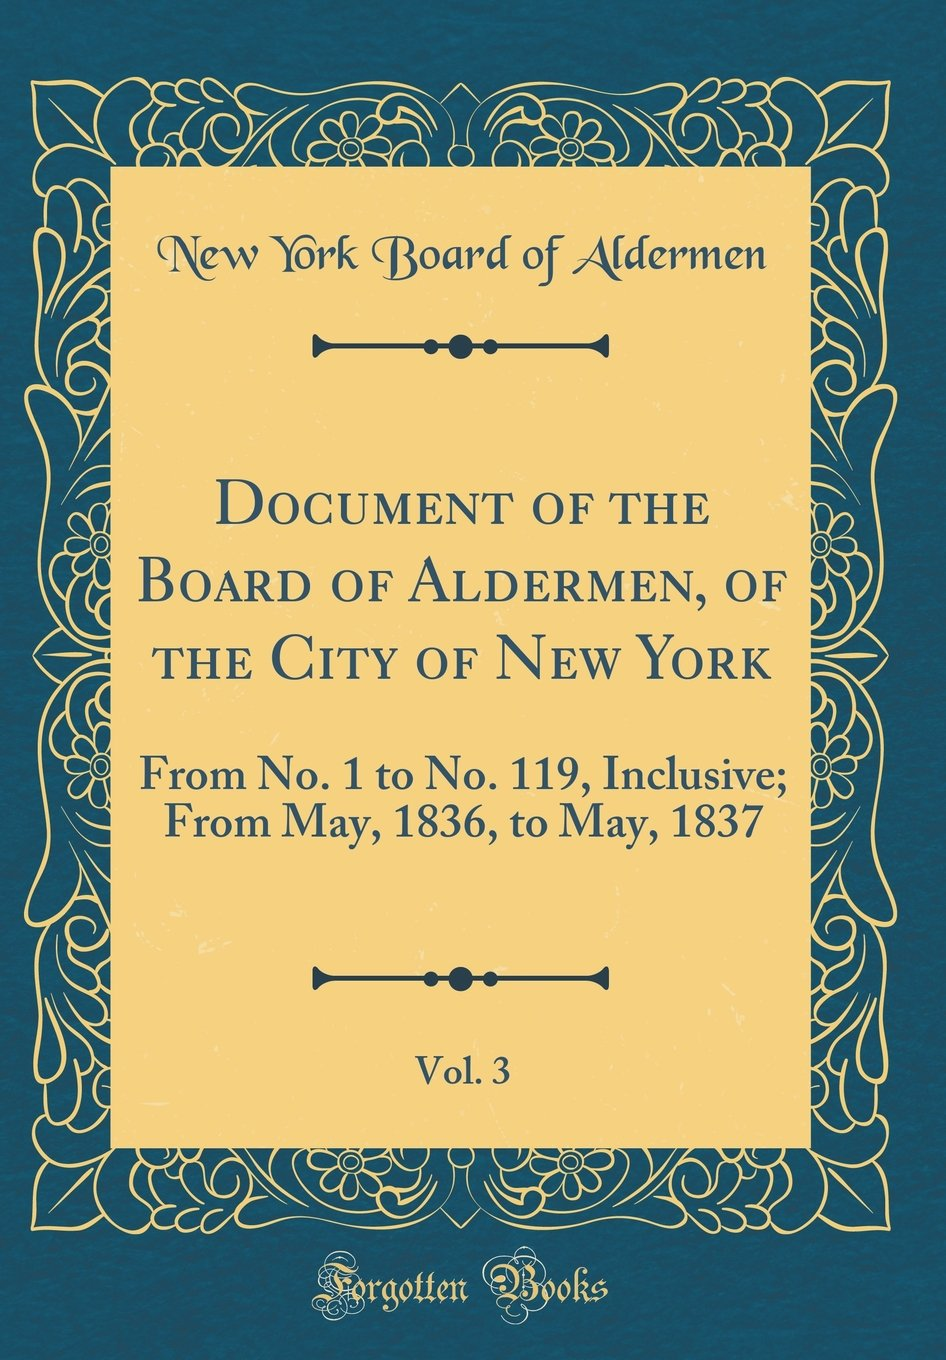 Document of the Board of Aldermen, of the City of New York, Vol. 3: From No. 1 to No. 119, Inclusive; From May, 1836, to May, 1837 (Classic Reprint) PDF